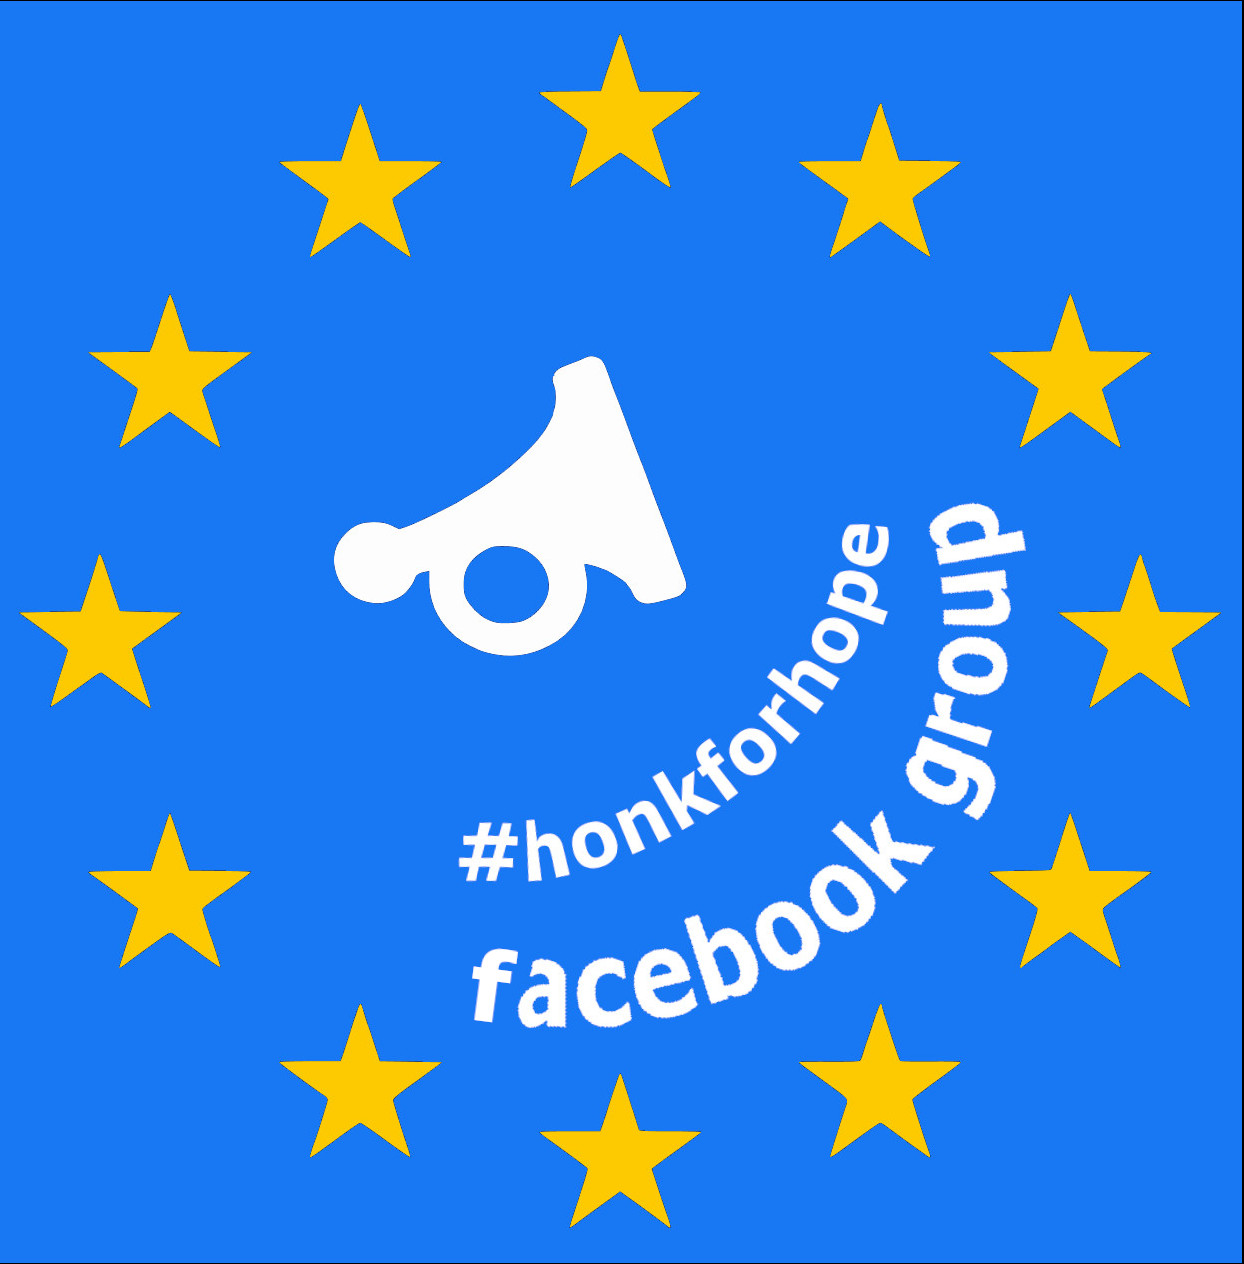 facebook group of motorcoach travel association #honkforhope